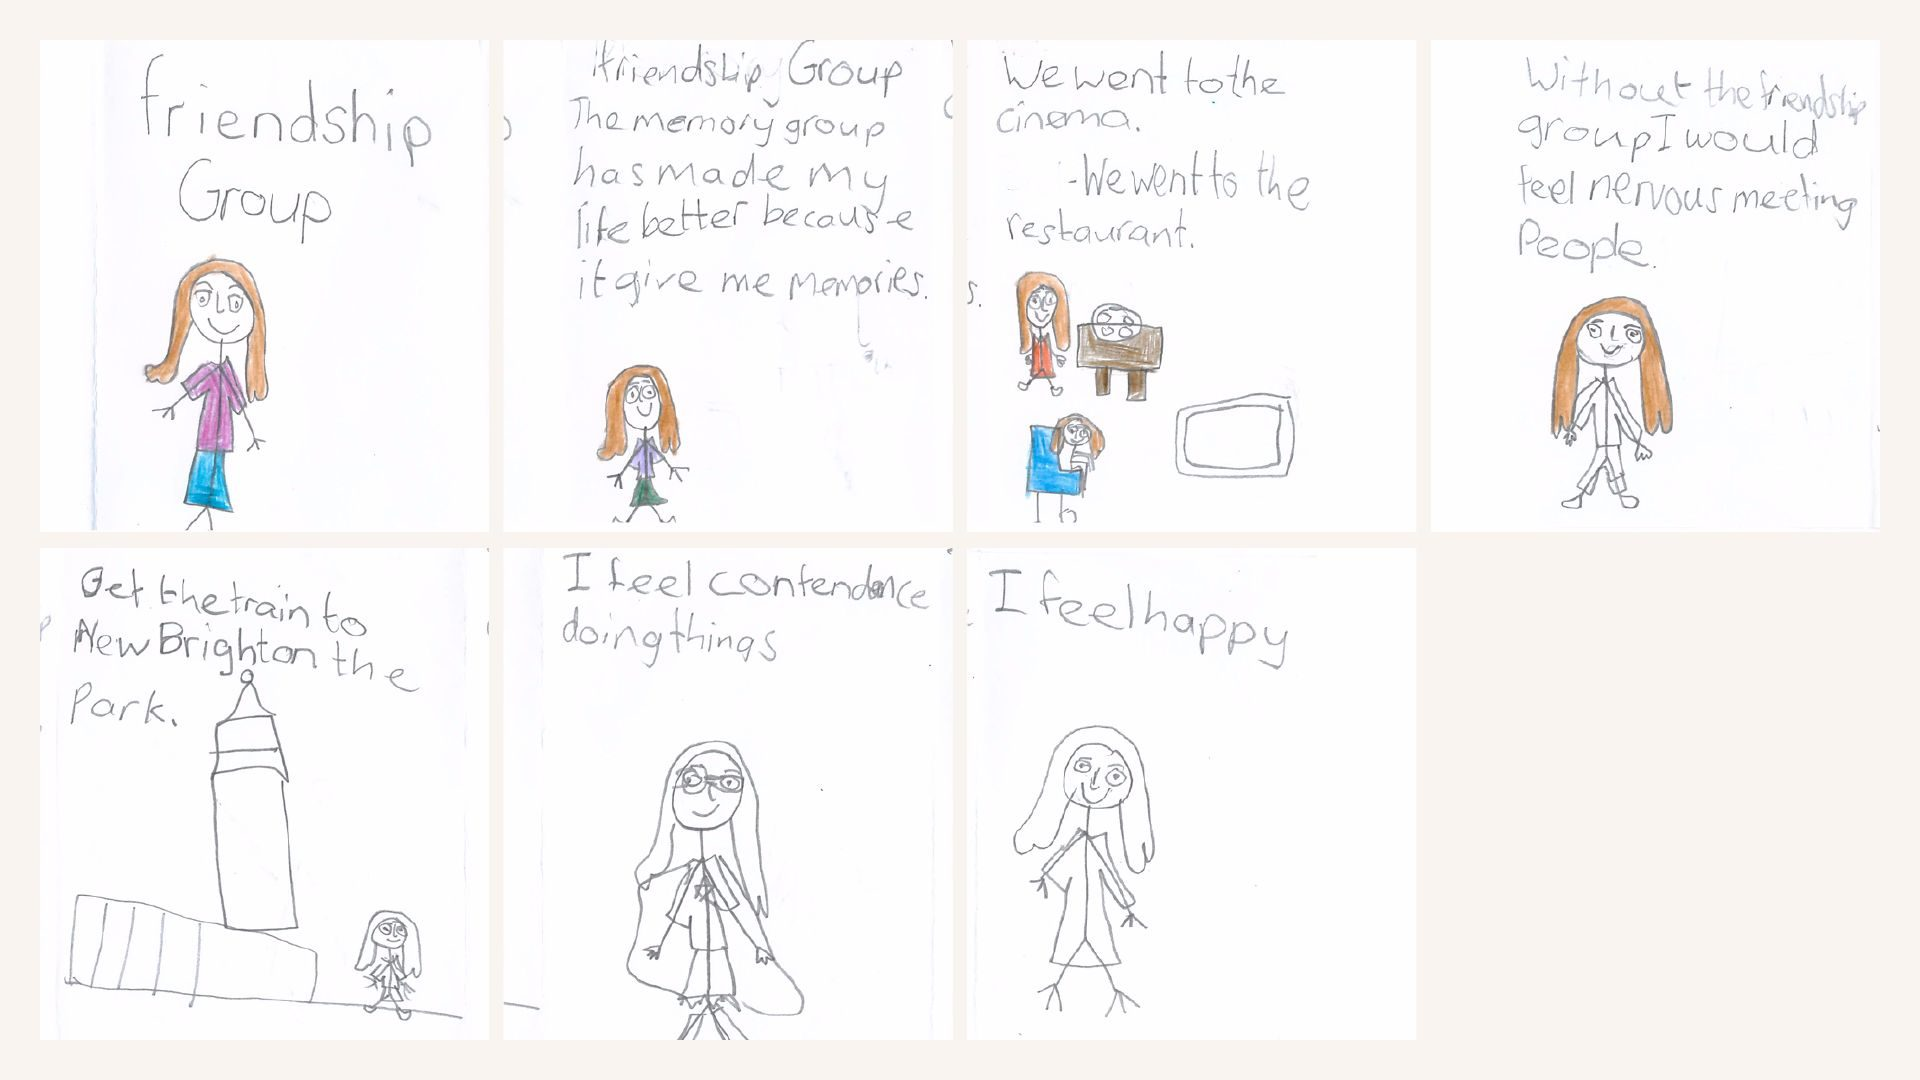 A child's cartoon strip explaining friendship groups and how it makes them feel happy making memories with other people